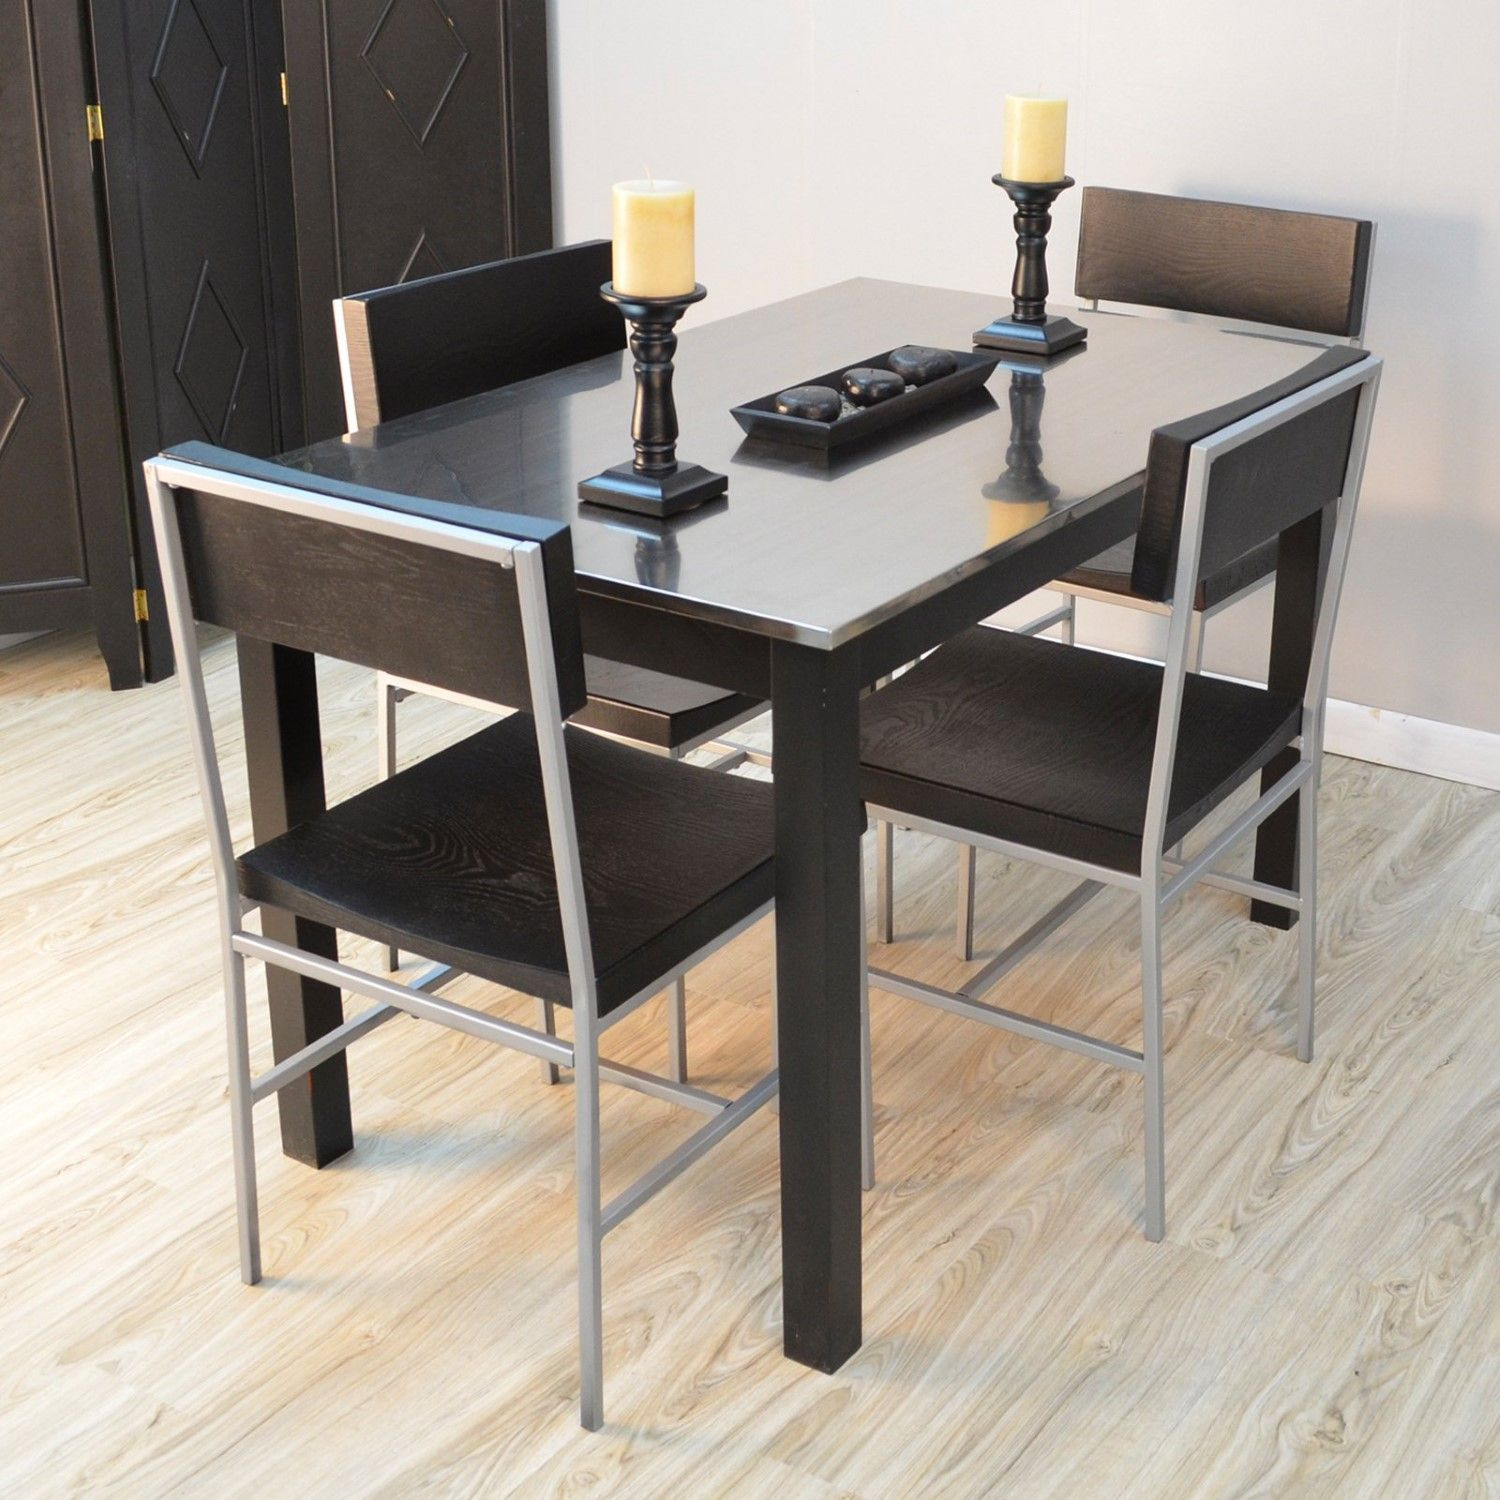 Carolina Morgan Stainless Steel Top Dining Table Steel Dining